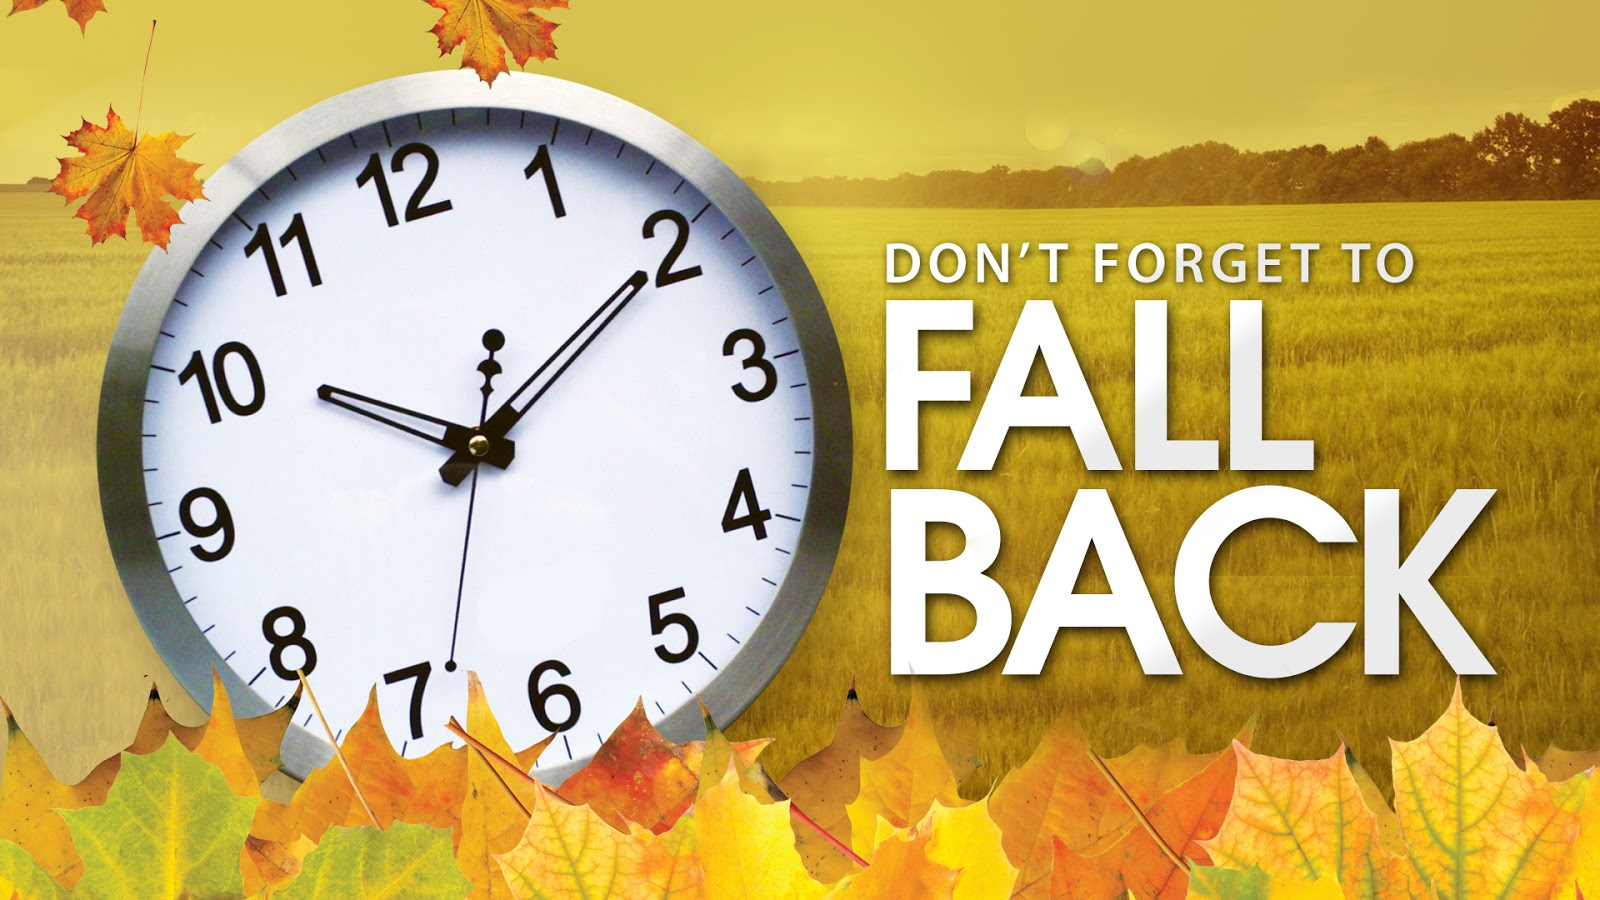 Don't forget to fall back 1 hour